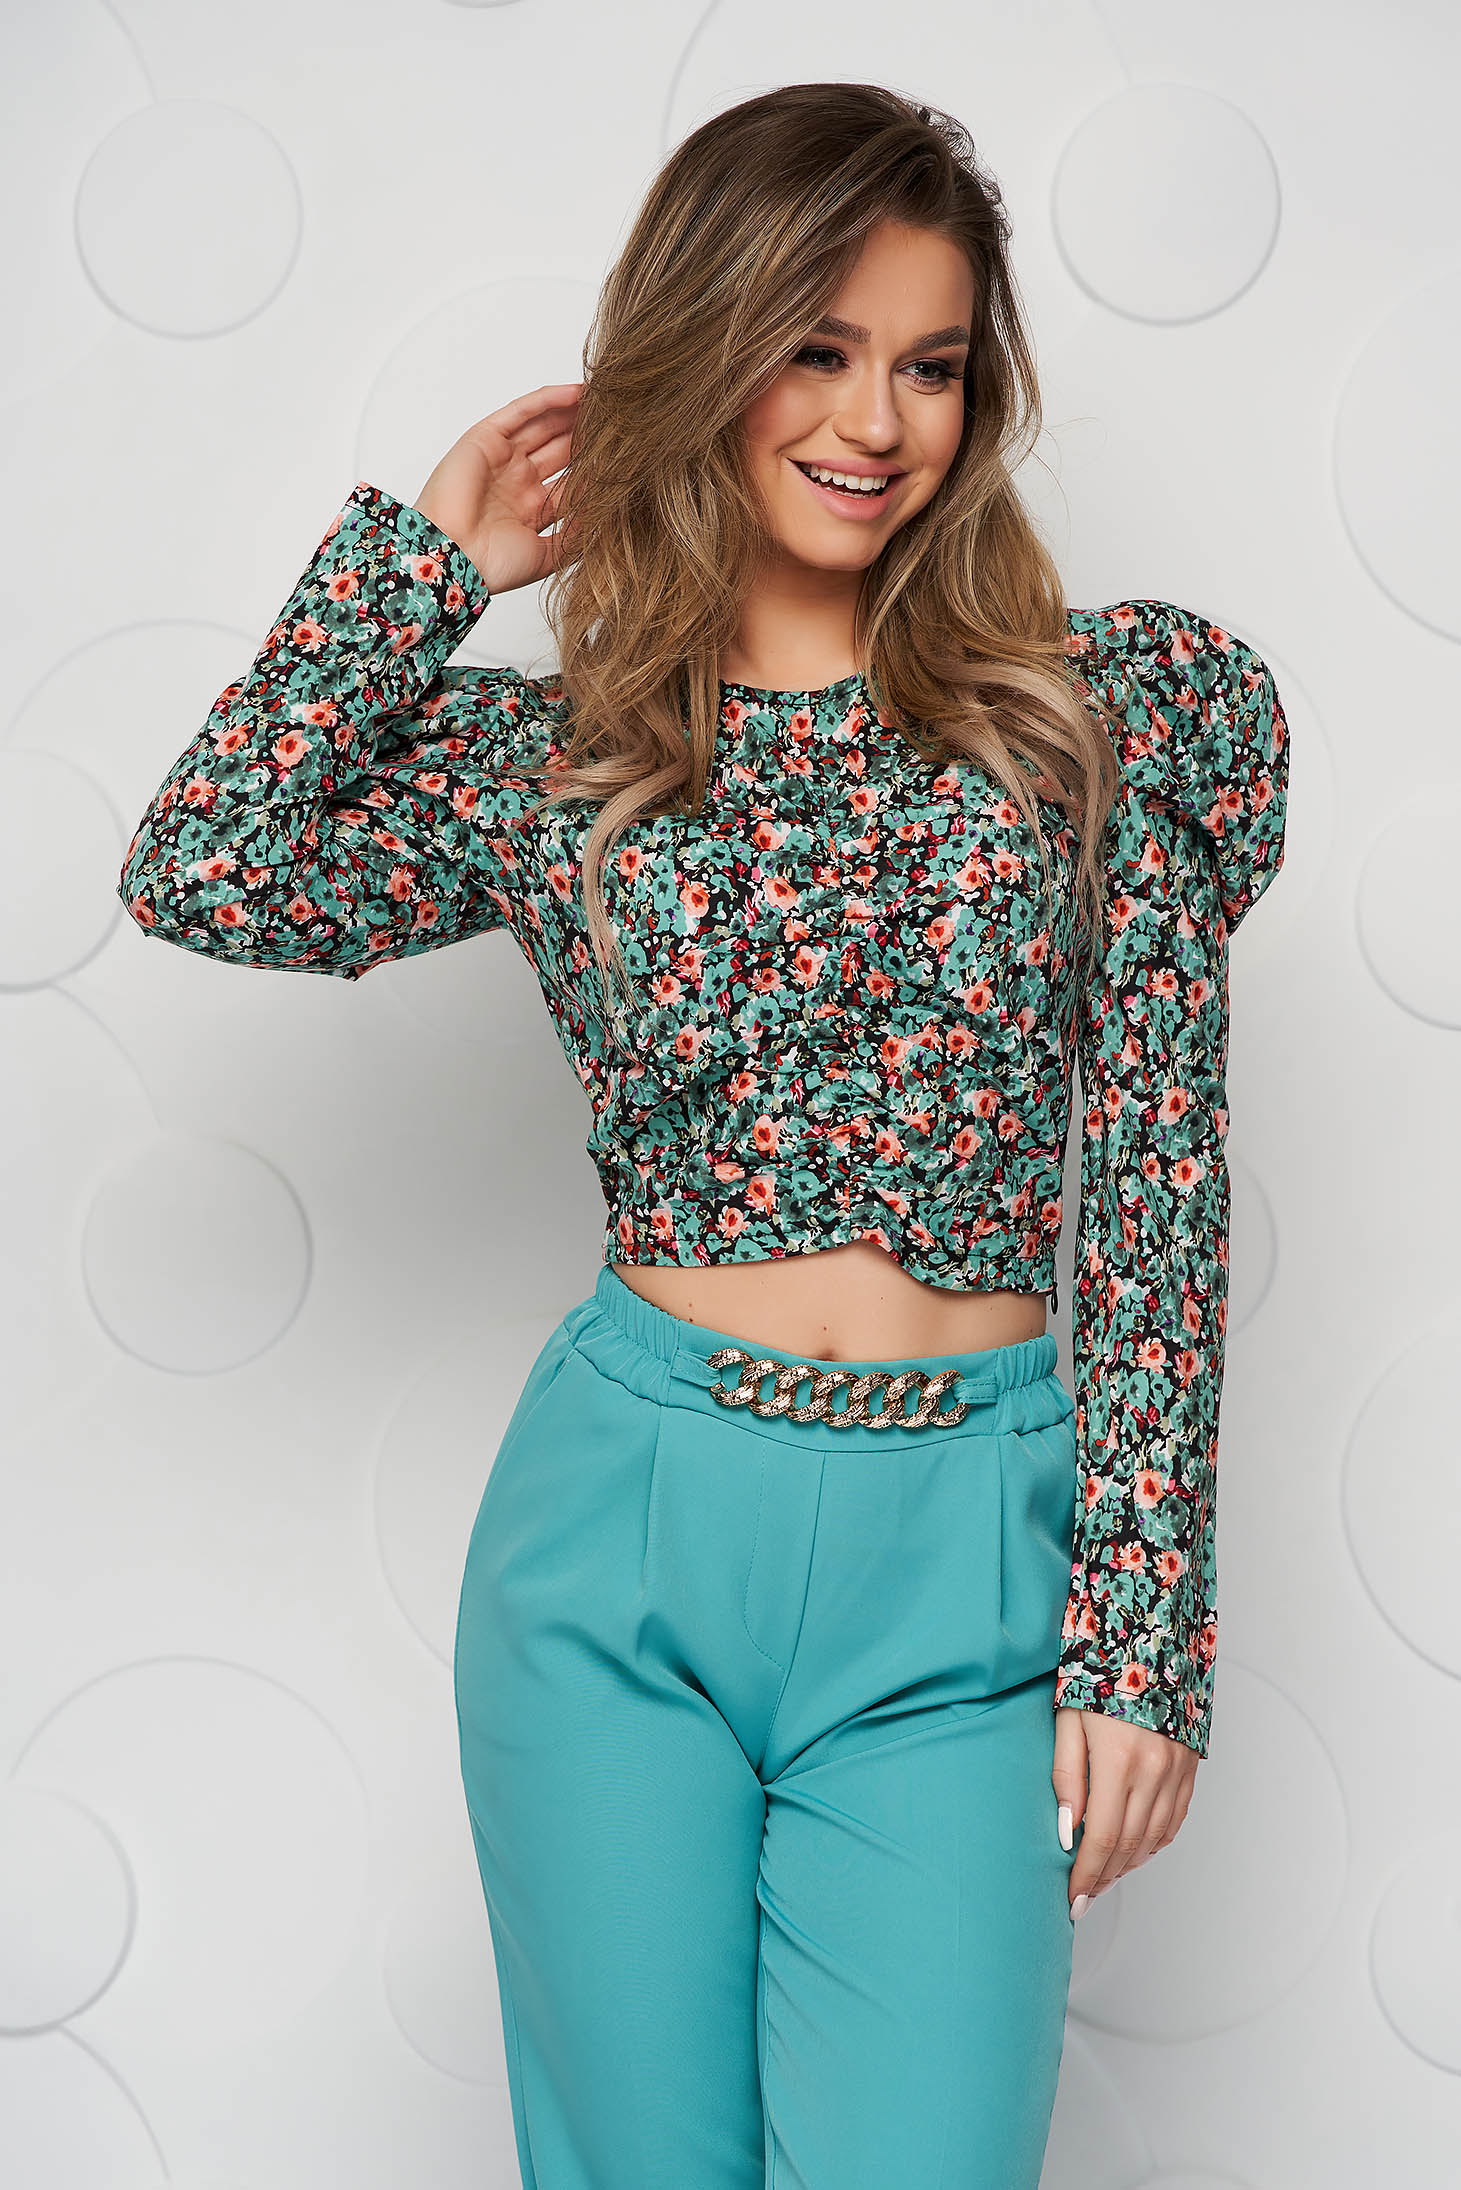 Darkgreen women`s blouse with floral print tented from wrinkled fabric high shoulders